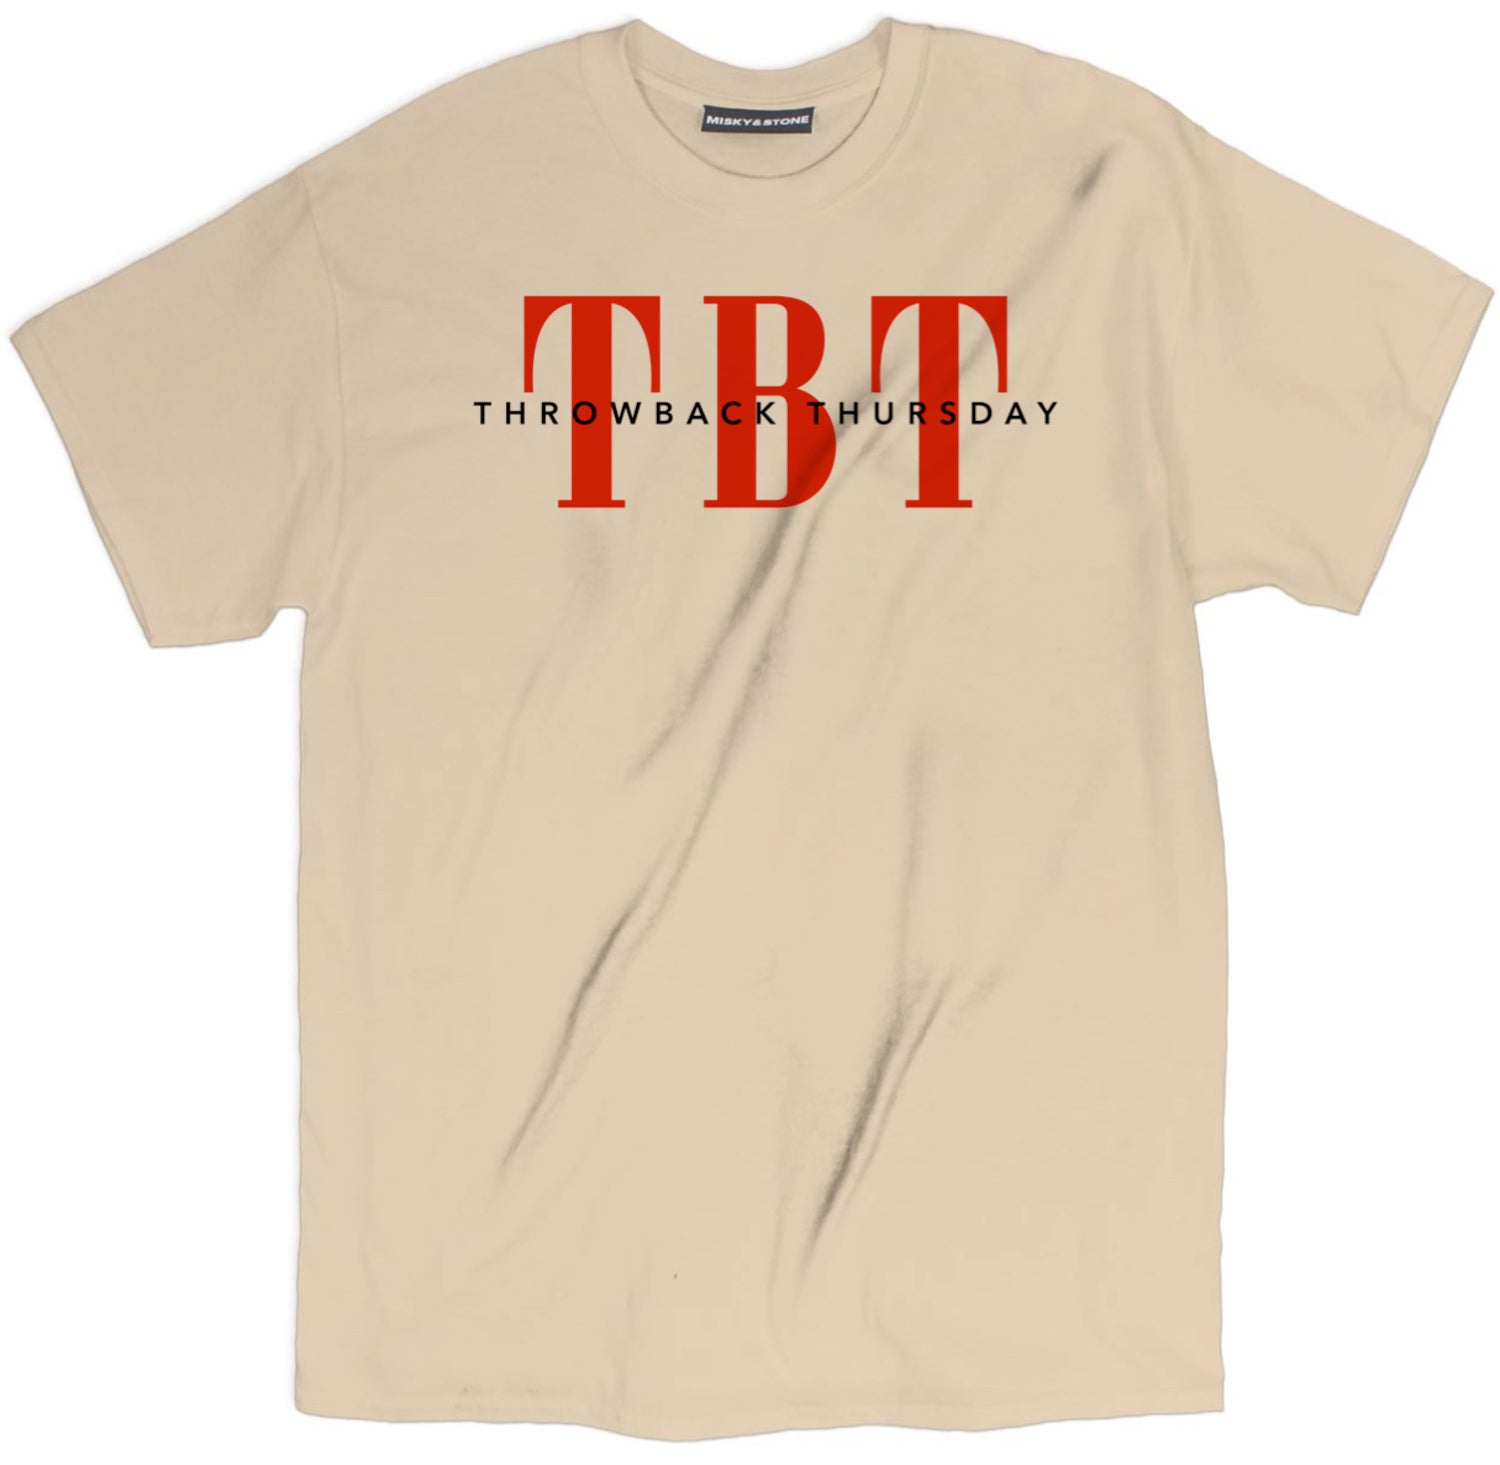 tbt t shirt, tbt shirt, throw back thursday t shirt, thursday t shirt, thursday shirt,